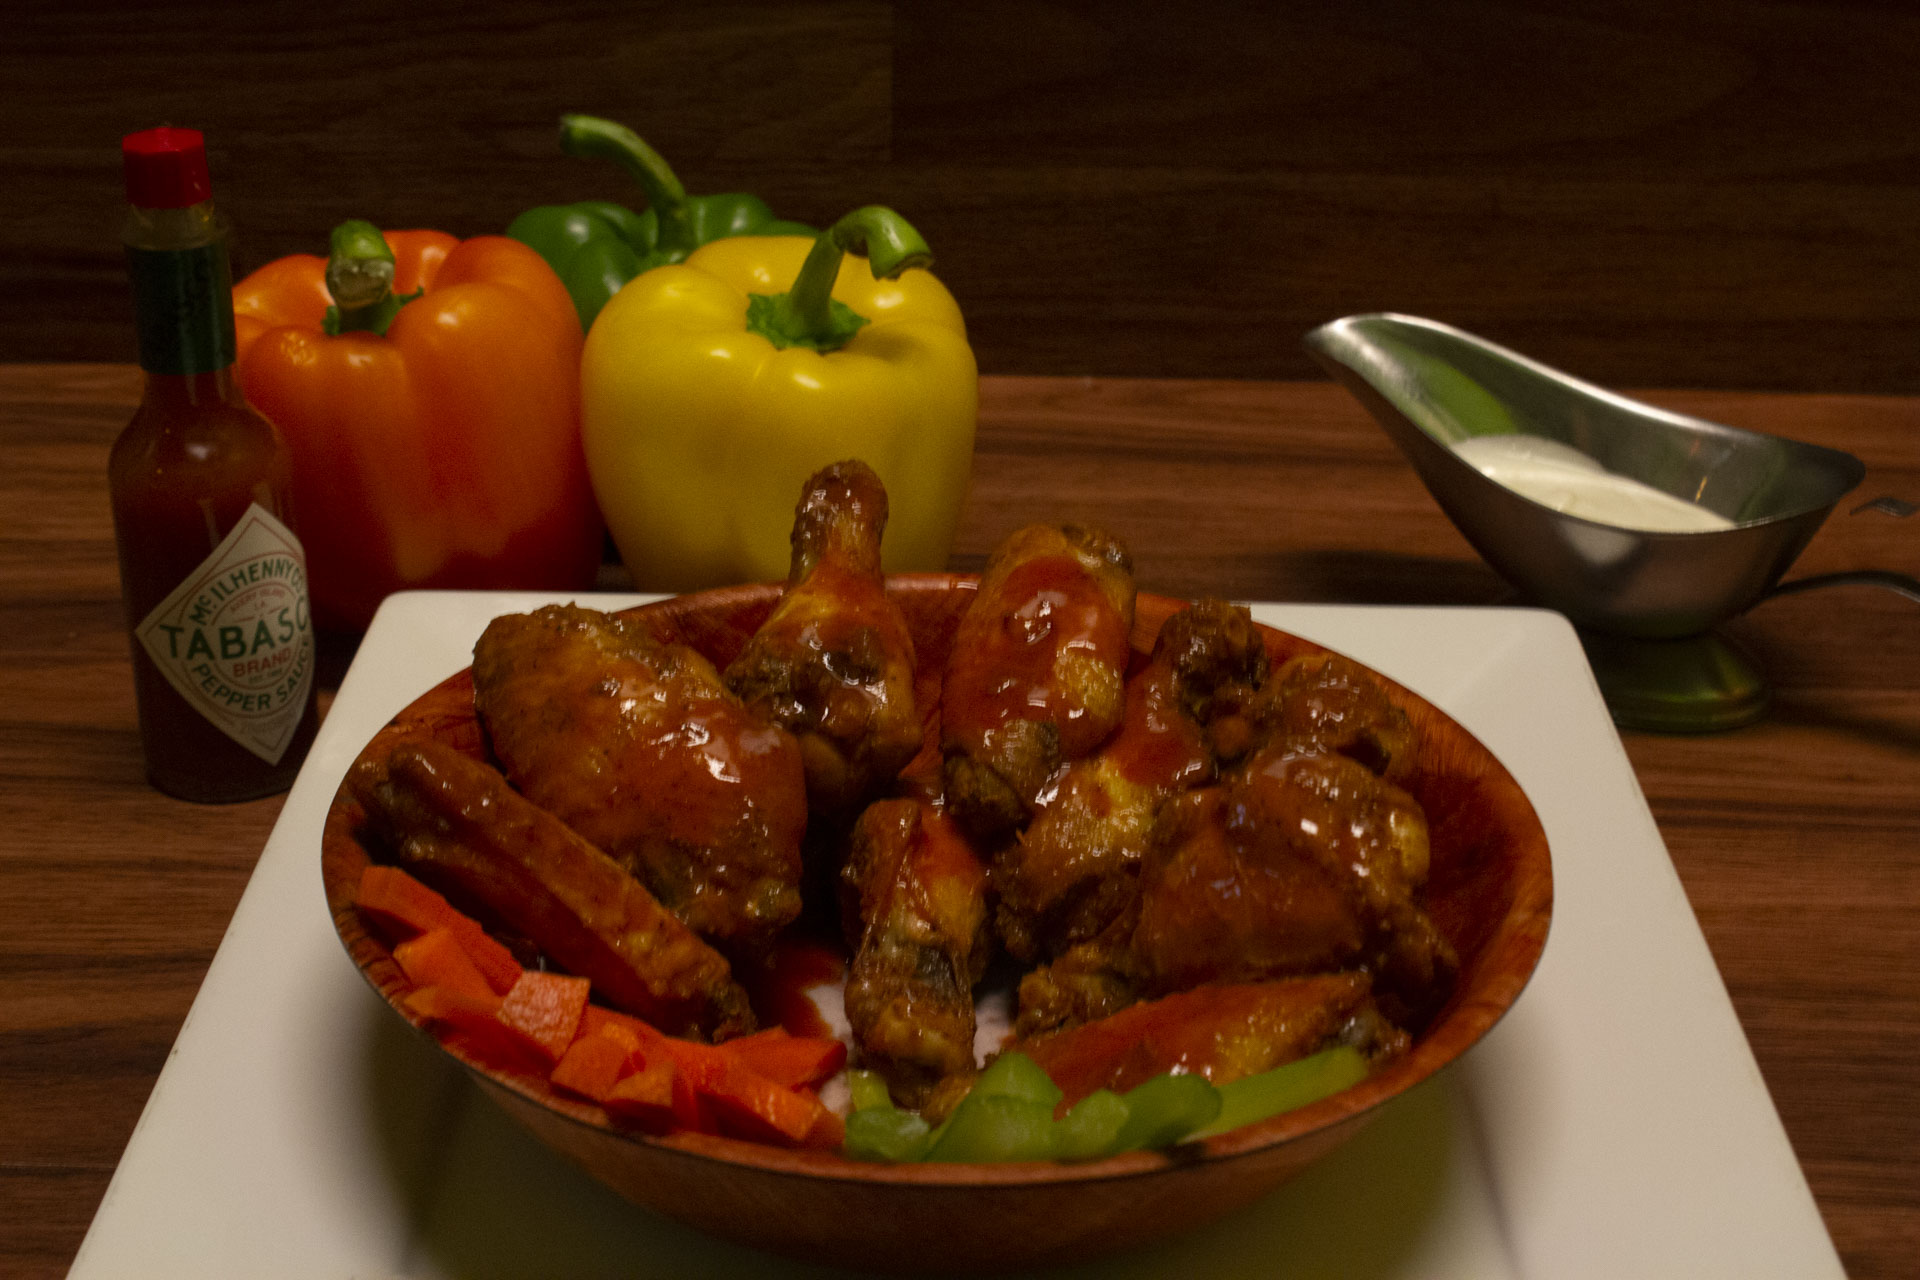 Chicken wings in a bowl with a bottle of Tabasco sauce, bell peppers, celery and side of bleu cheese.